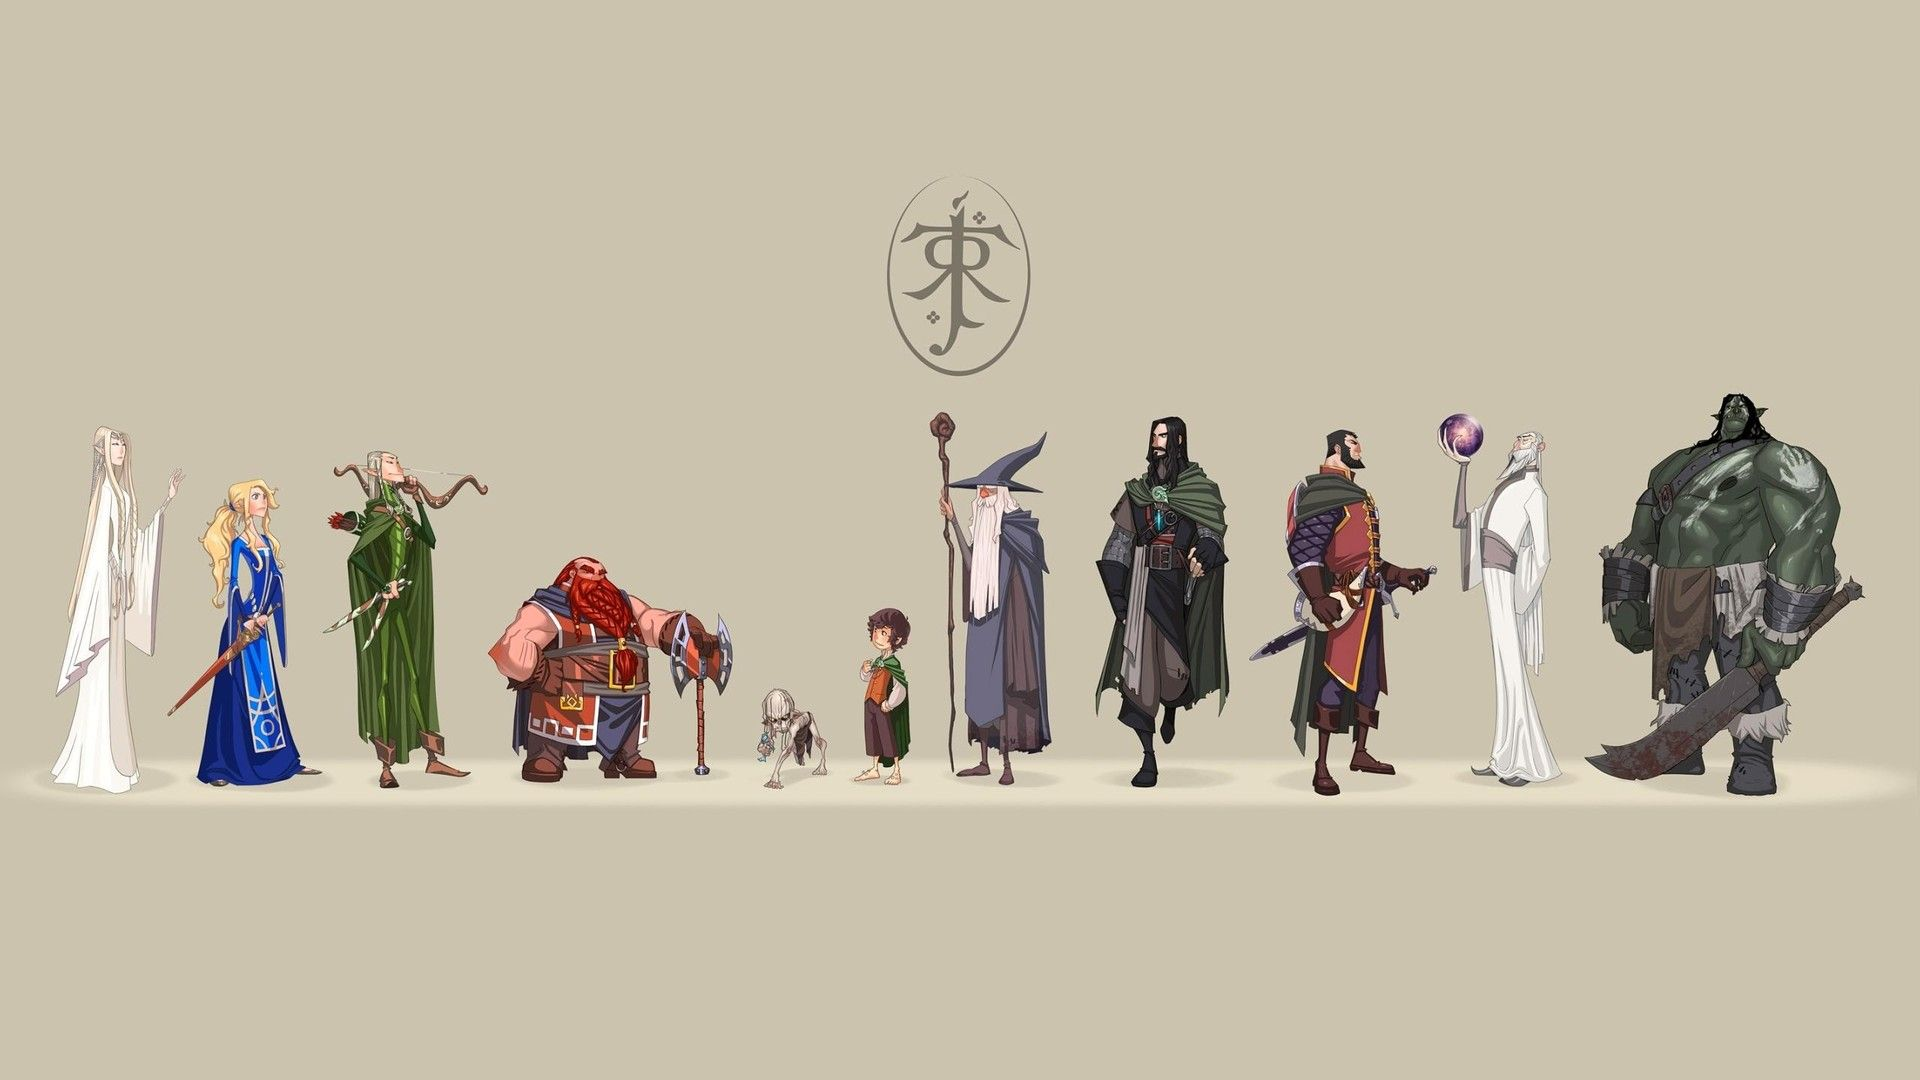 Anime Style Lotr 1920x1080 Followme Cooliphone6case On